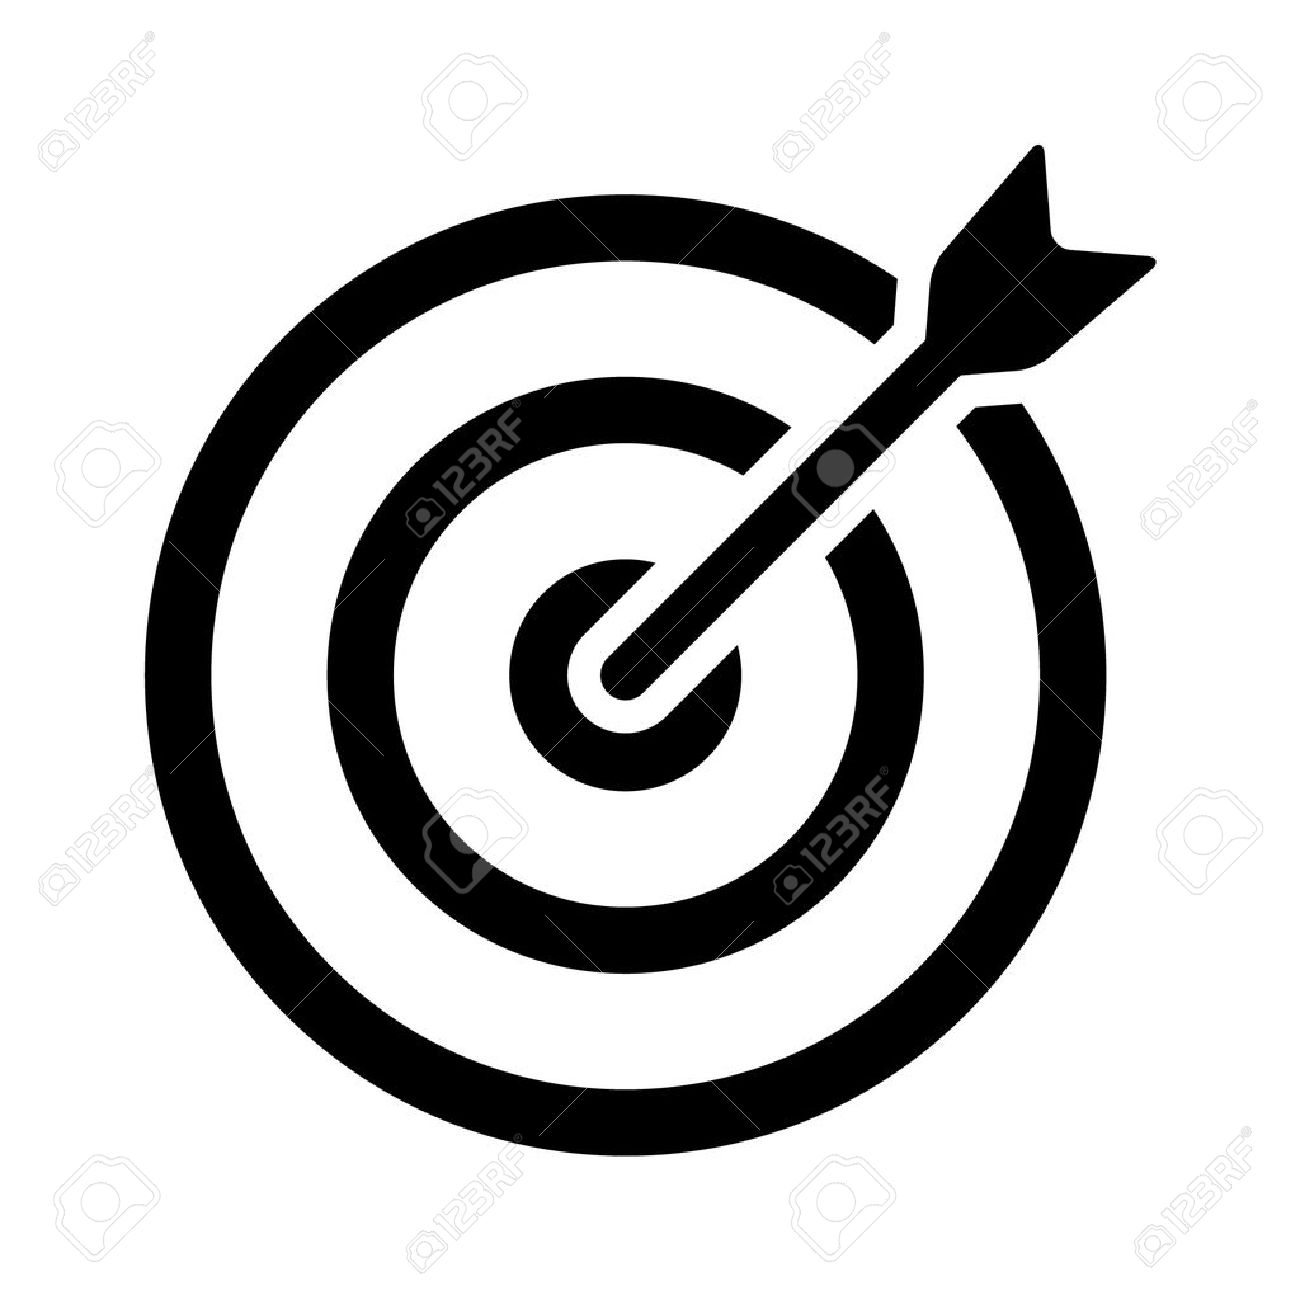 Free download best on. Bullseye clipart objective